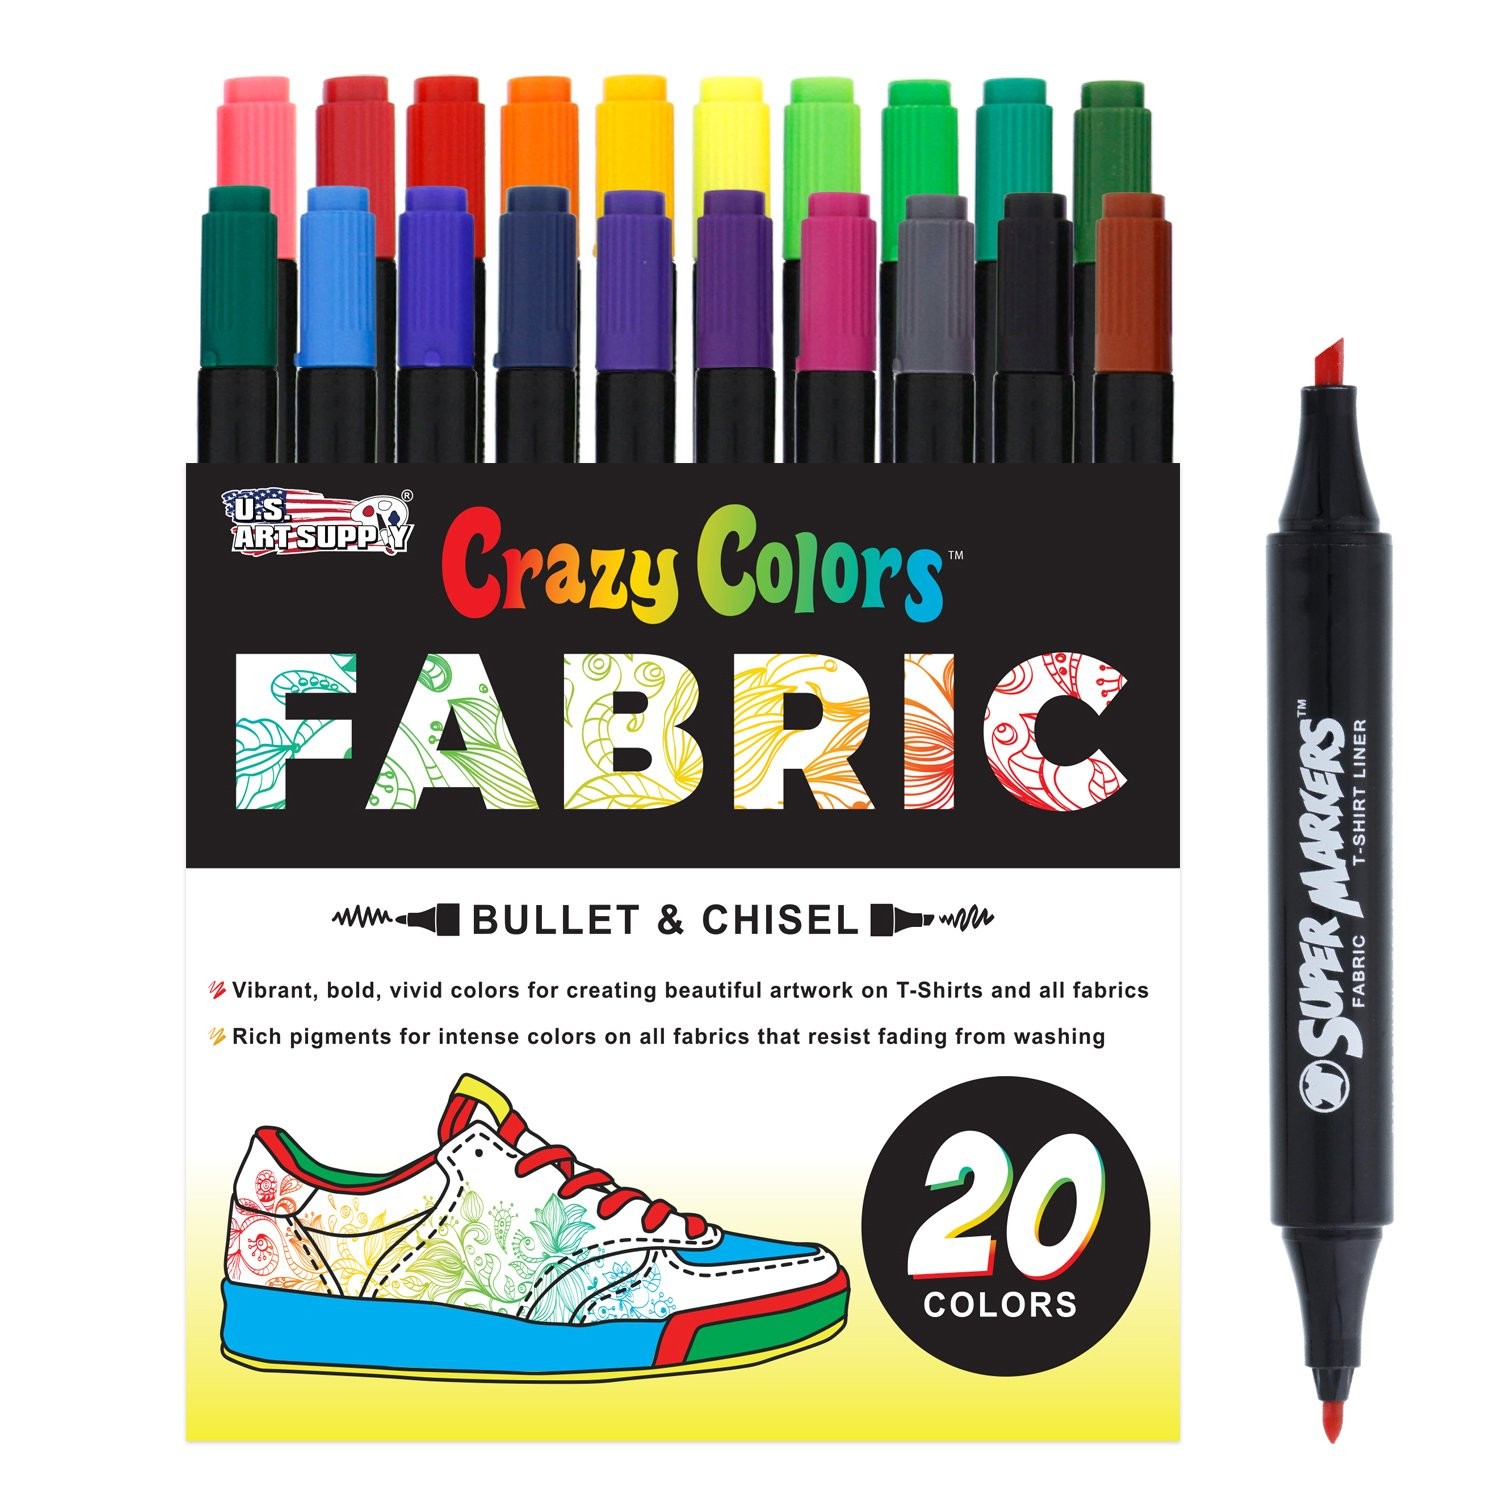 Super Markers 20 Unique Colors Dual Tip Fabric & T-Shirt Marker Set-Double-Ended Fabric Markers with Chisel Point and Fine Point Tips - 20 Permanent Ink Vibrant and Bold Colors US Art Supply SM-132